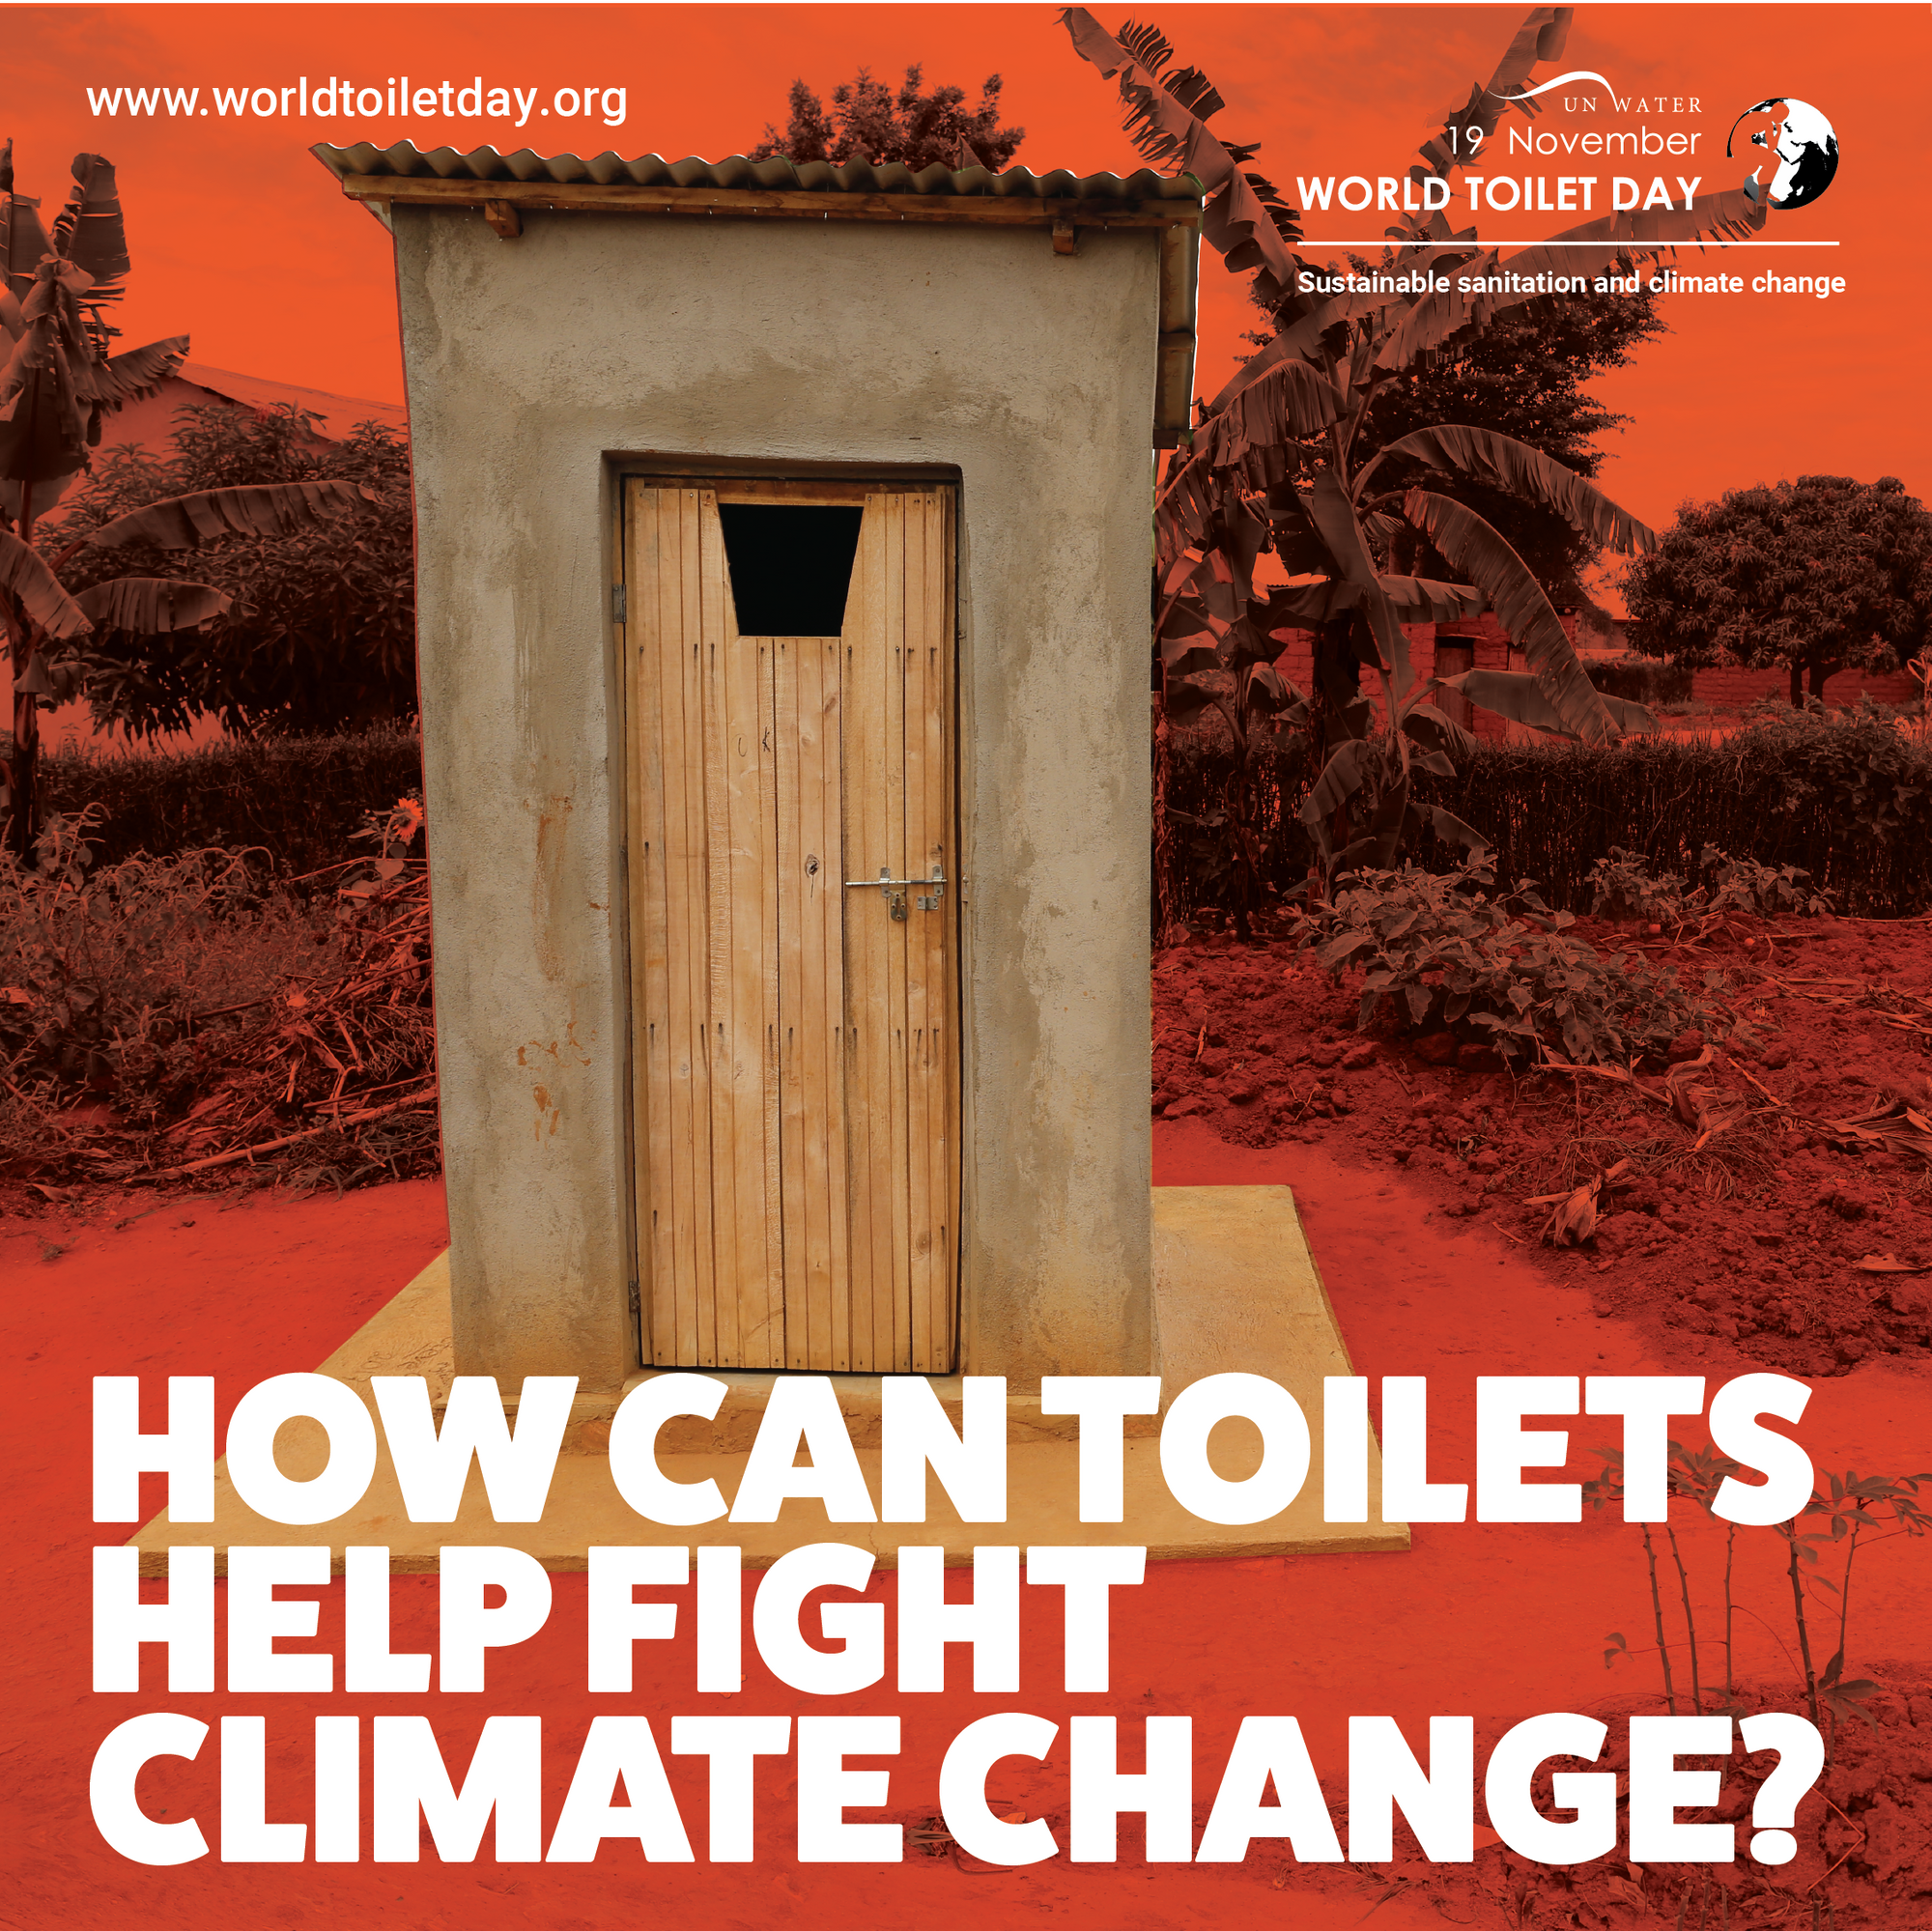 Picture: worldtoiletday.org